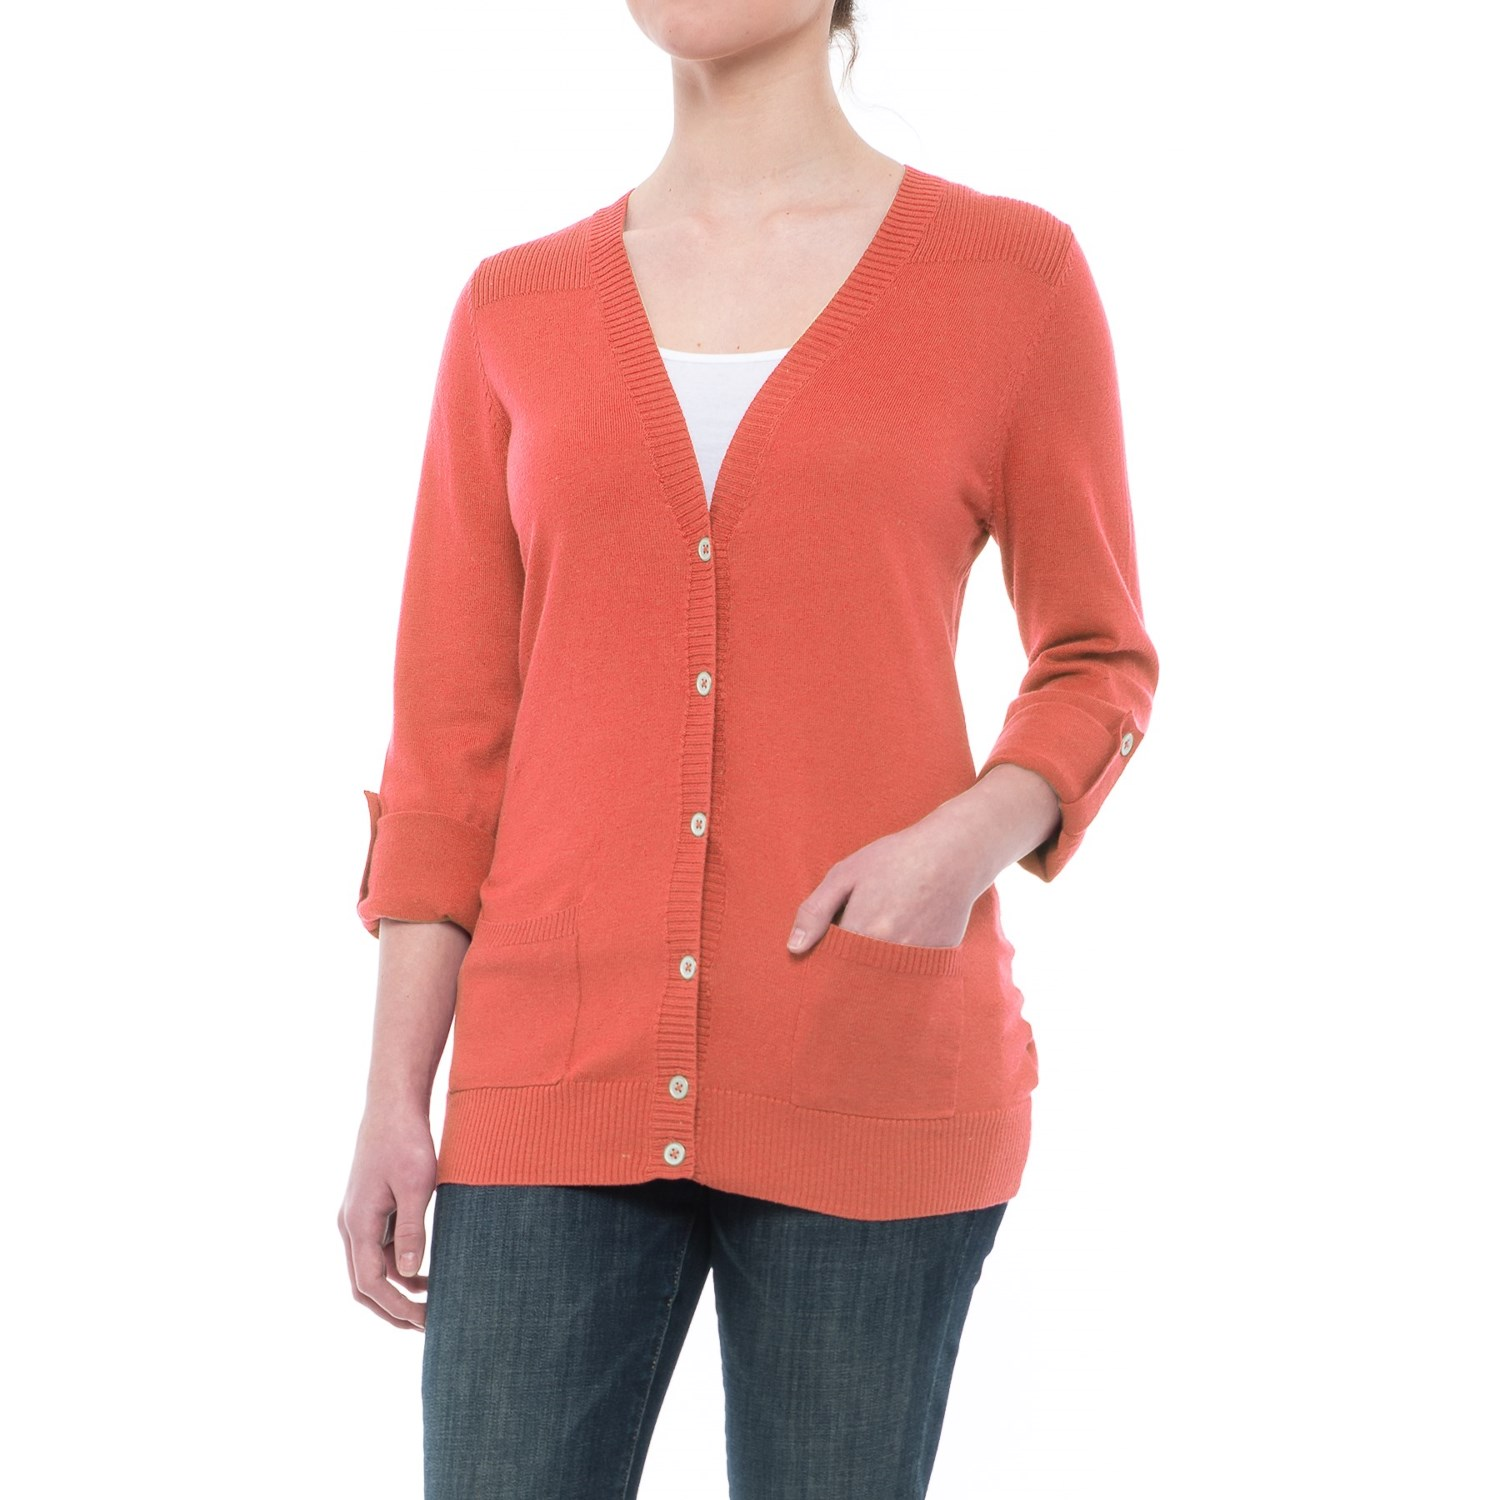 V-Neck Cardigan Sweater (For Women) - Save 65%